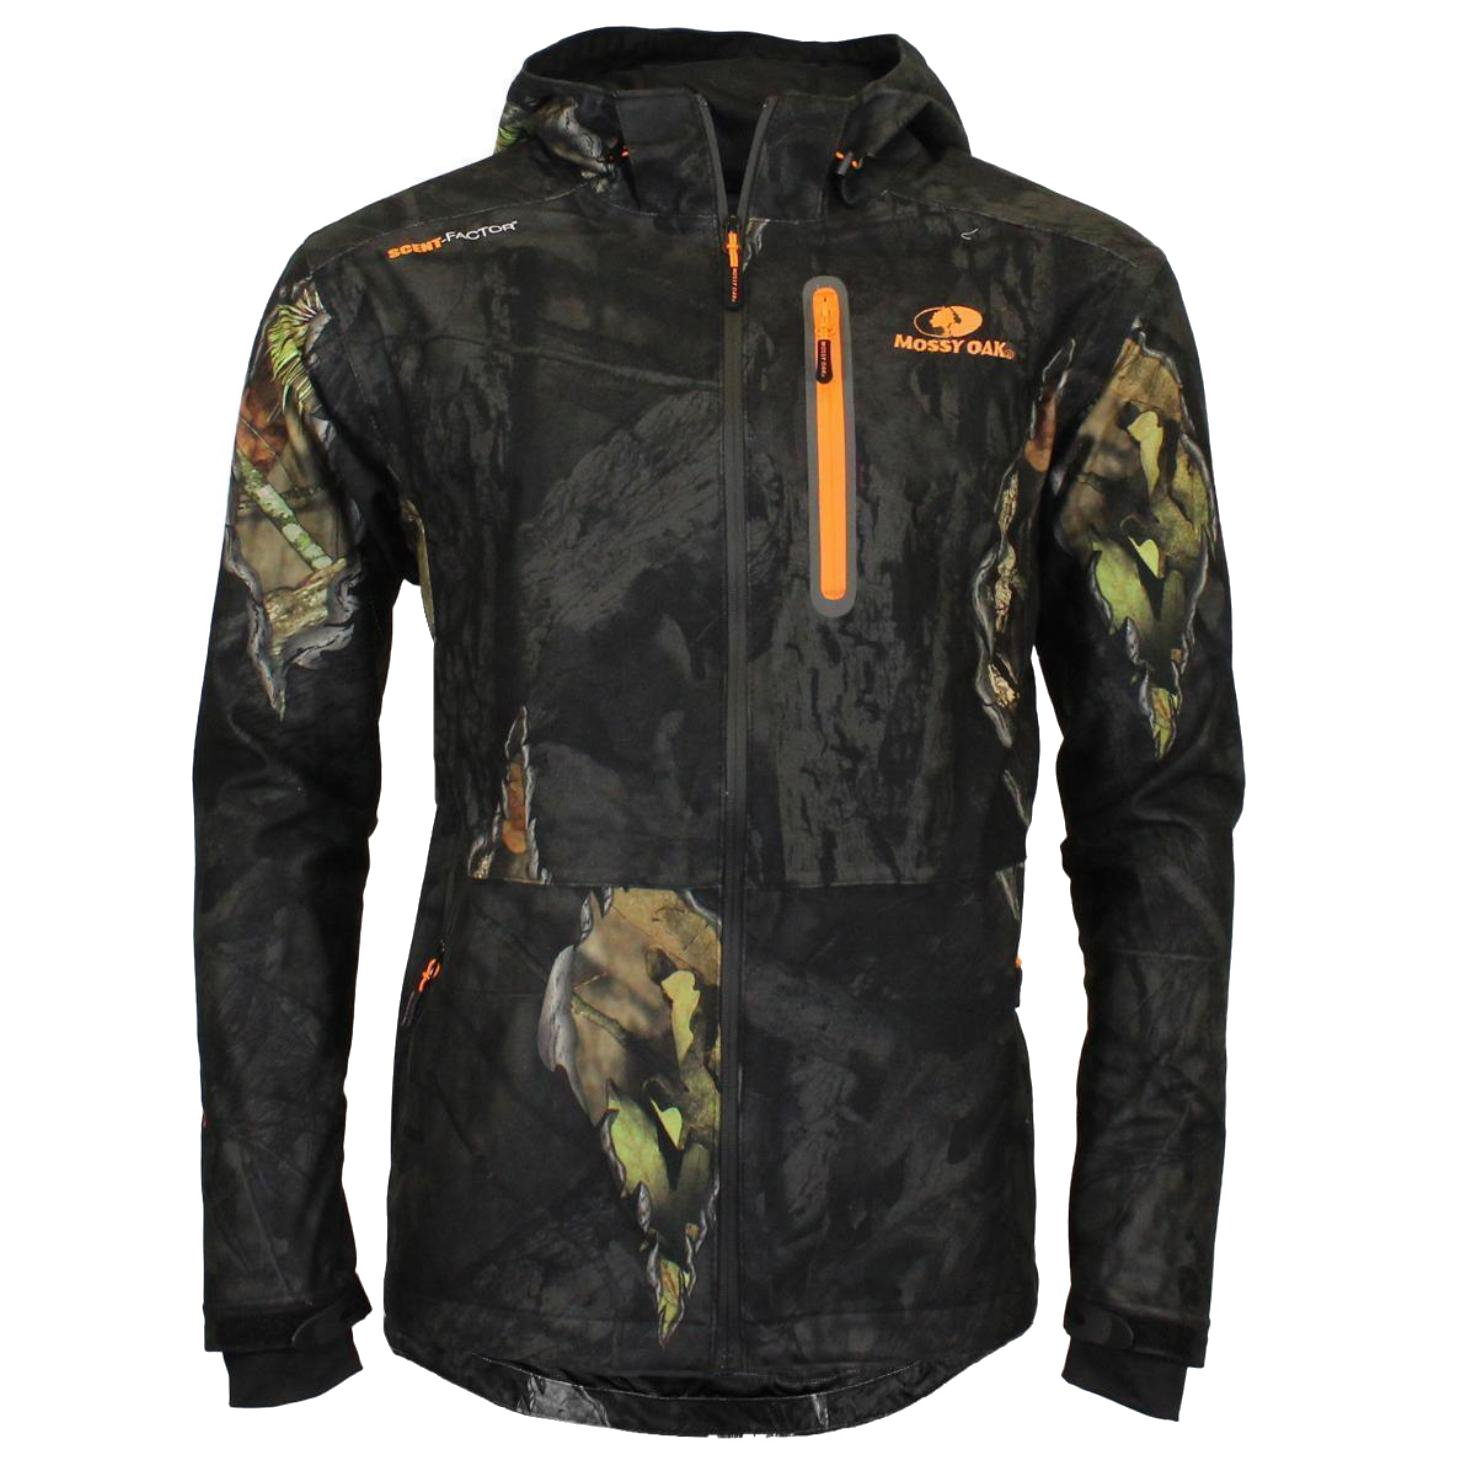 Boys Mossy Oak Eclipse Camouflage Waterproof Jacket - Hunting Fishing Outdoor Soft & quite tricot